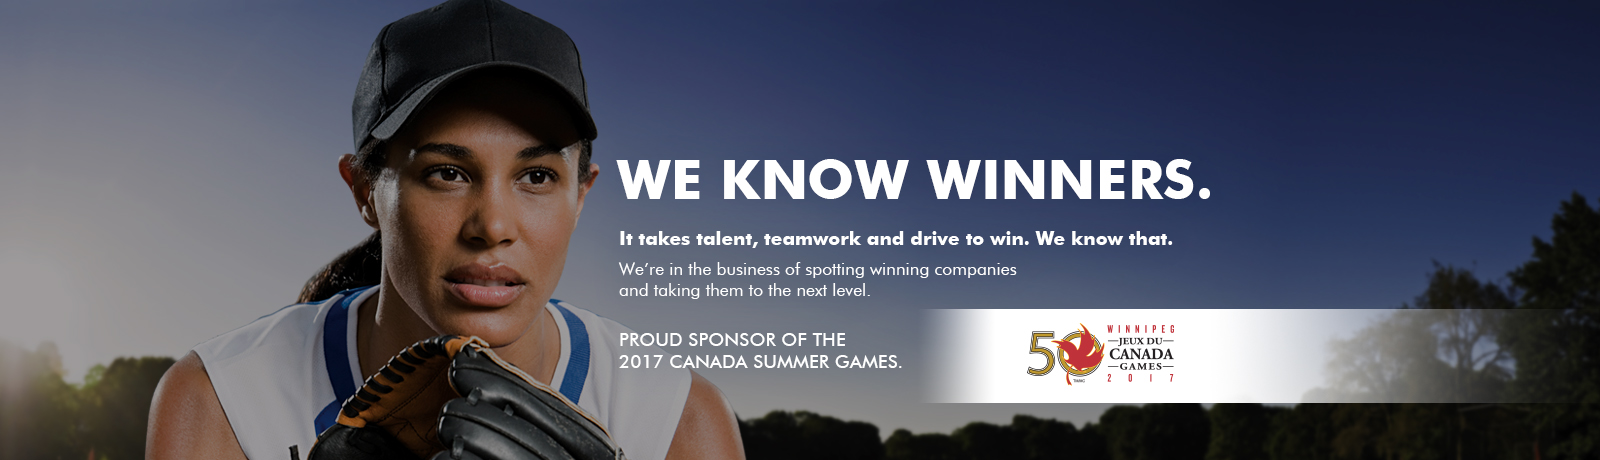 We know winners. It takes talent, teamwork and drive to win. We know that.